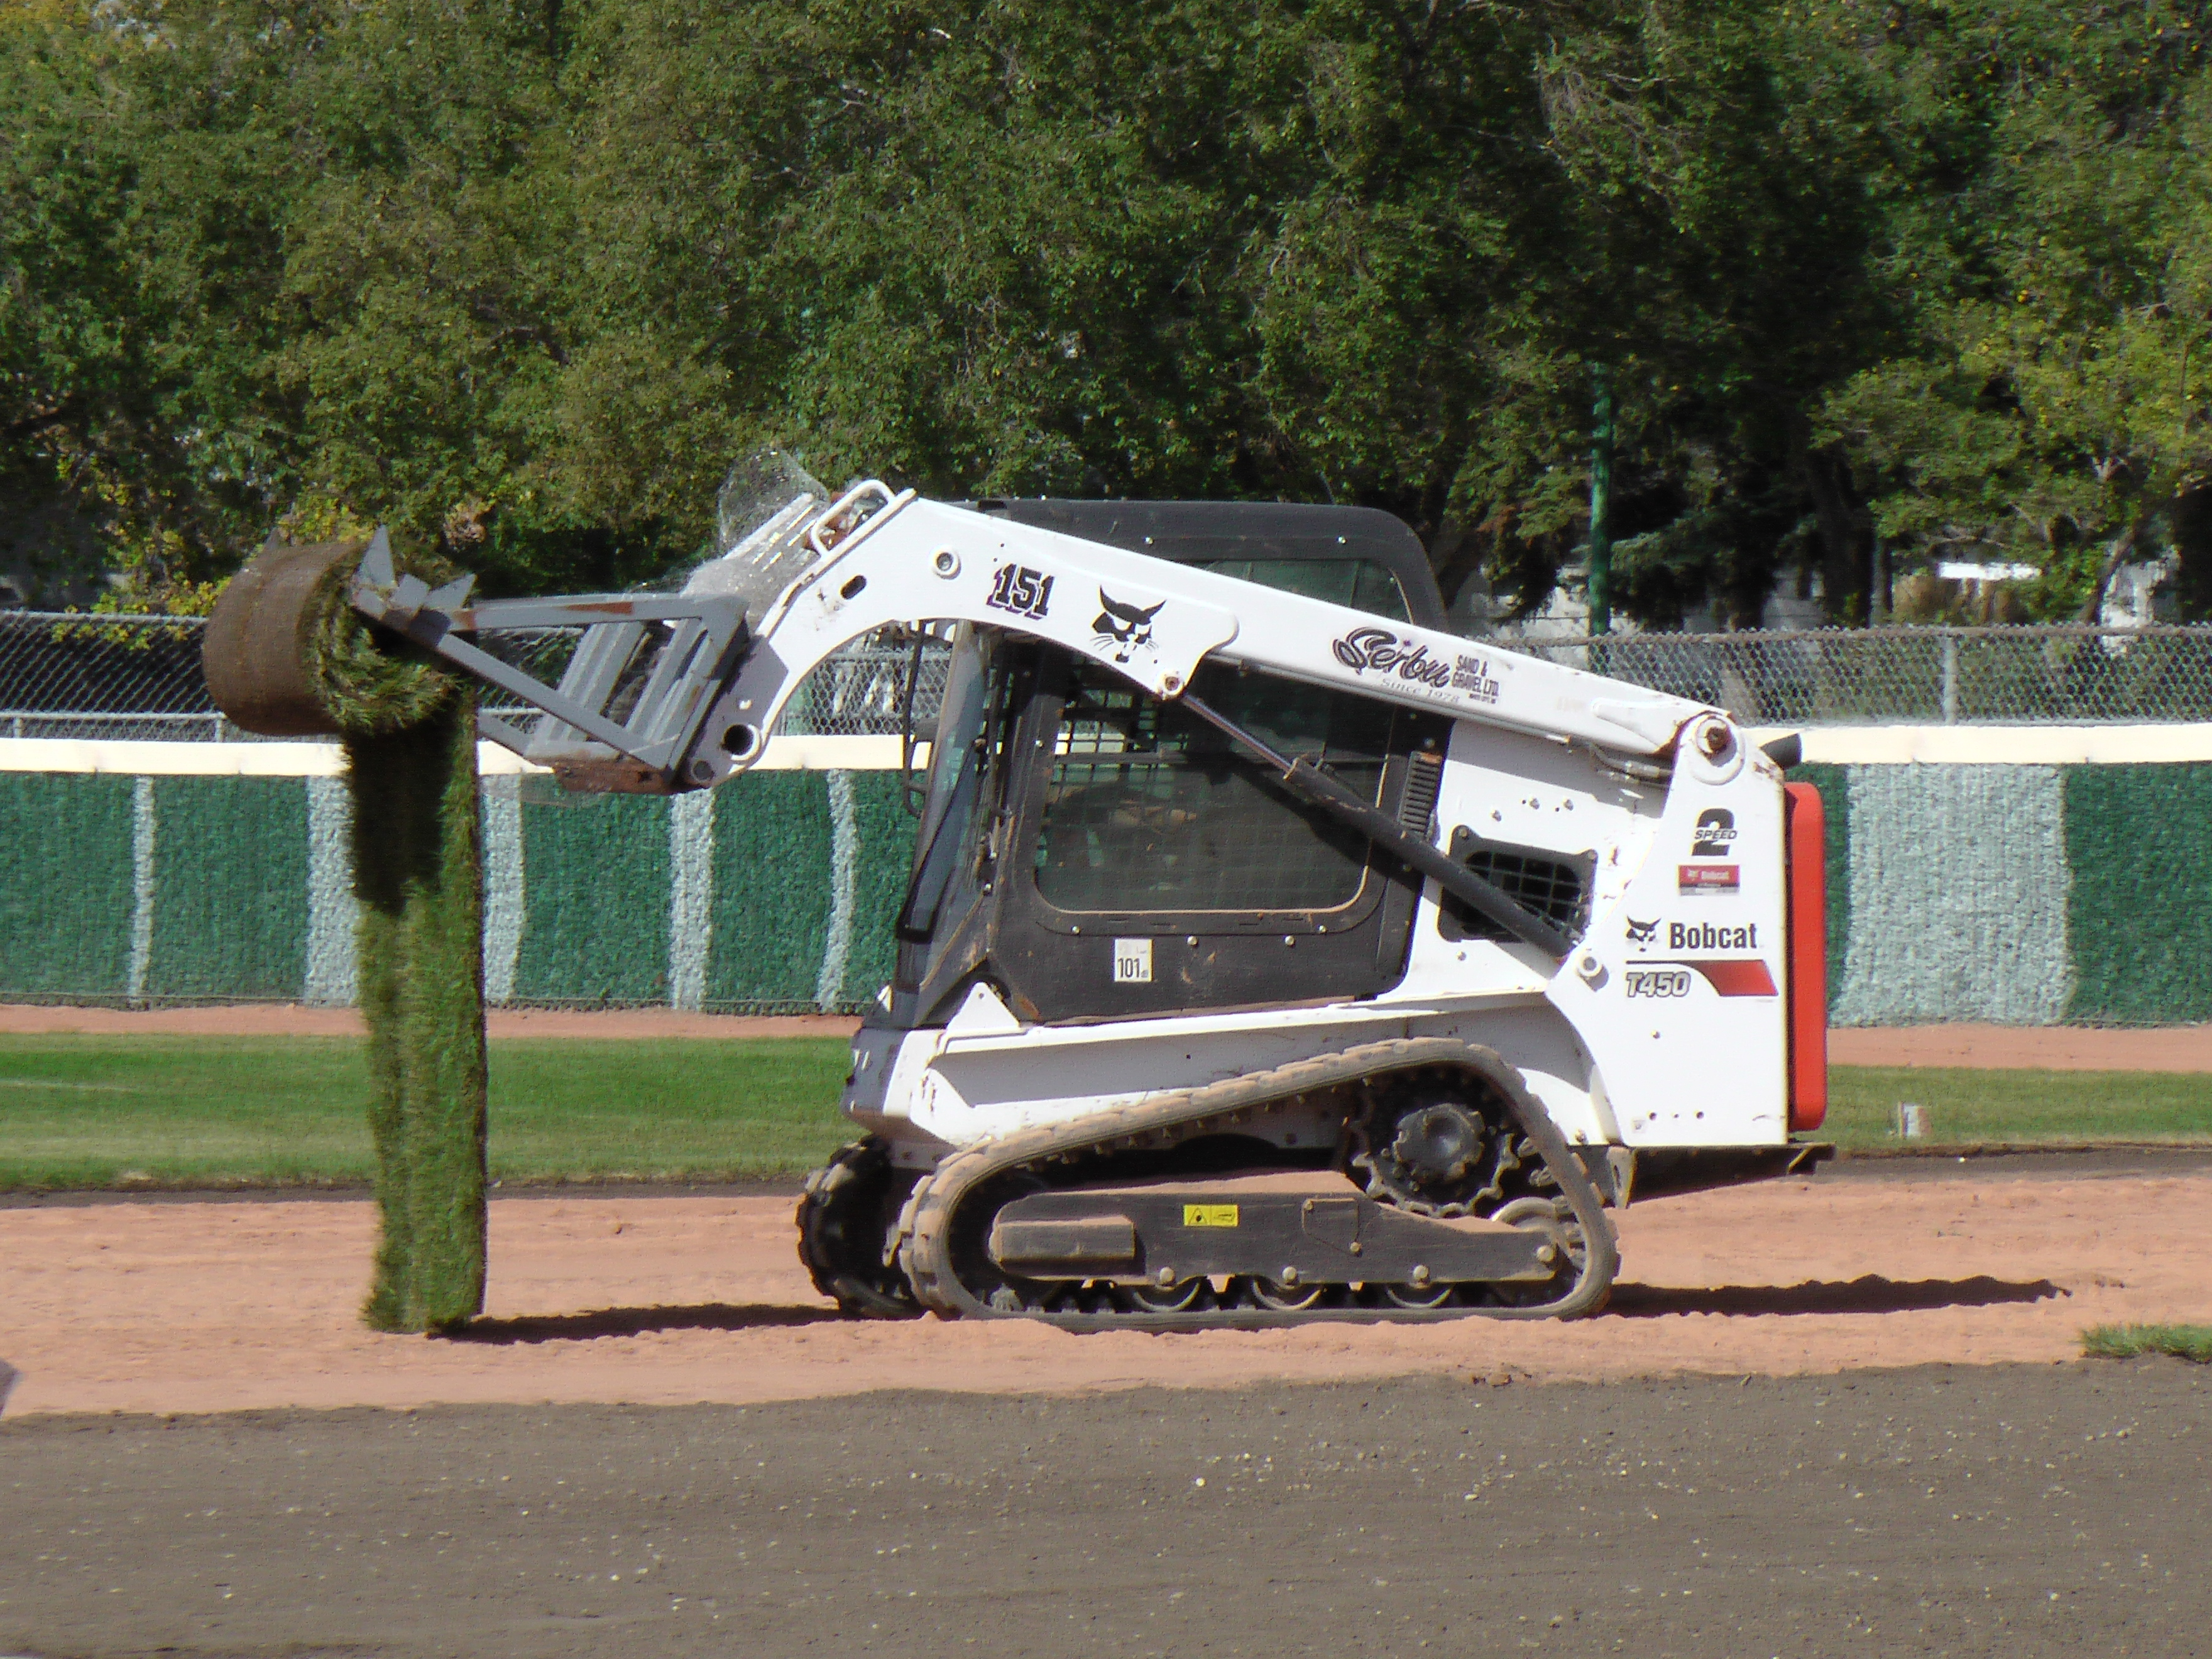 Sept 5 2018 Optimist Park Field Renovations, Placing New Sod/Leveling! - Image 10